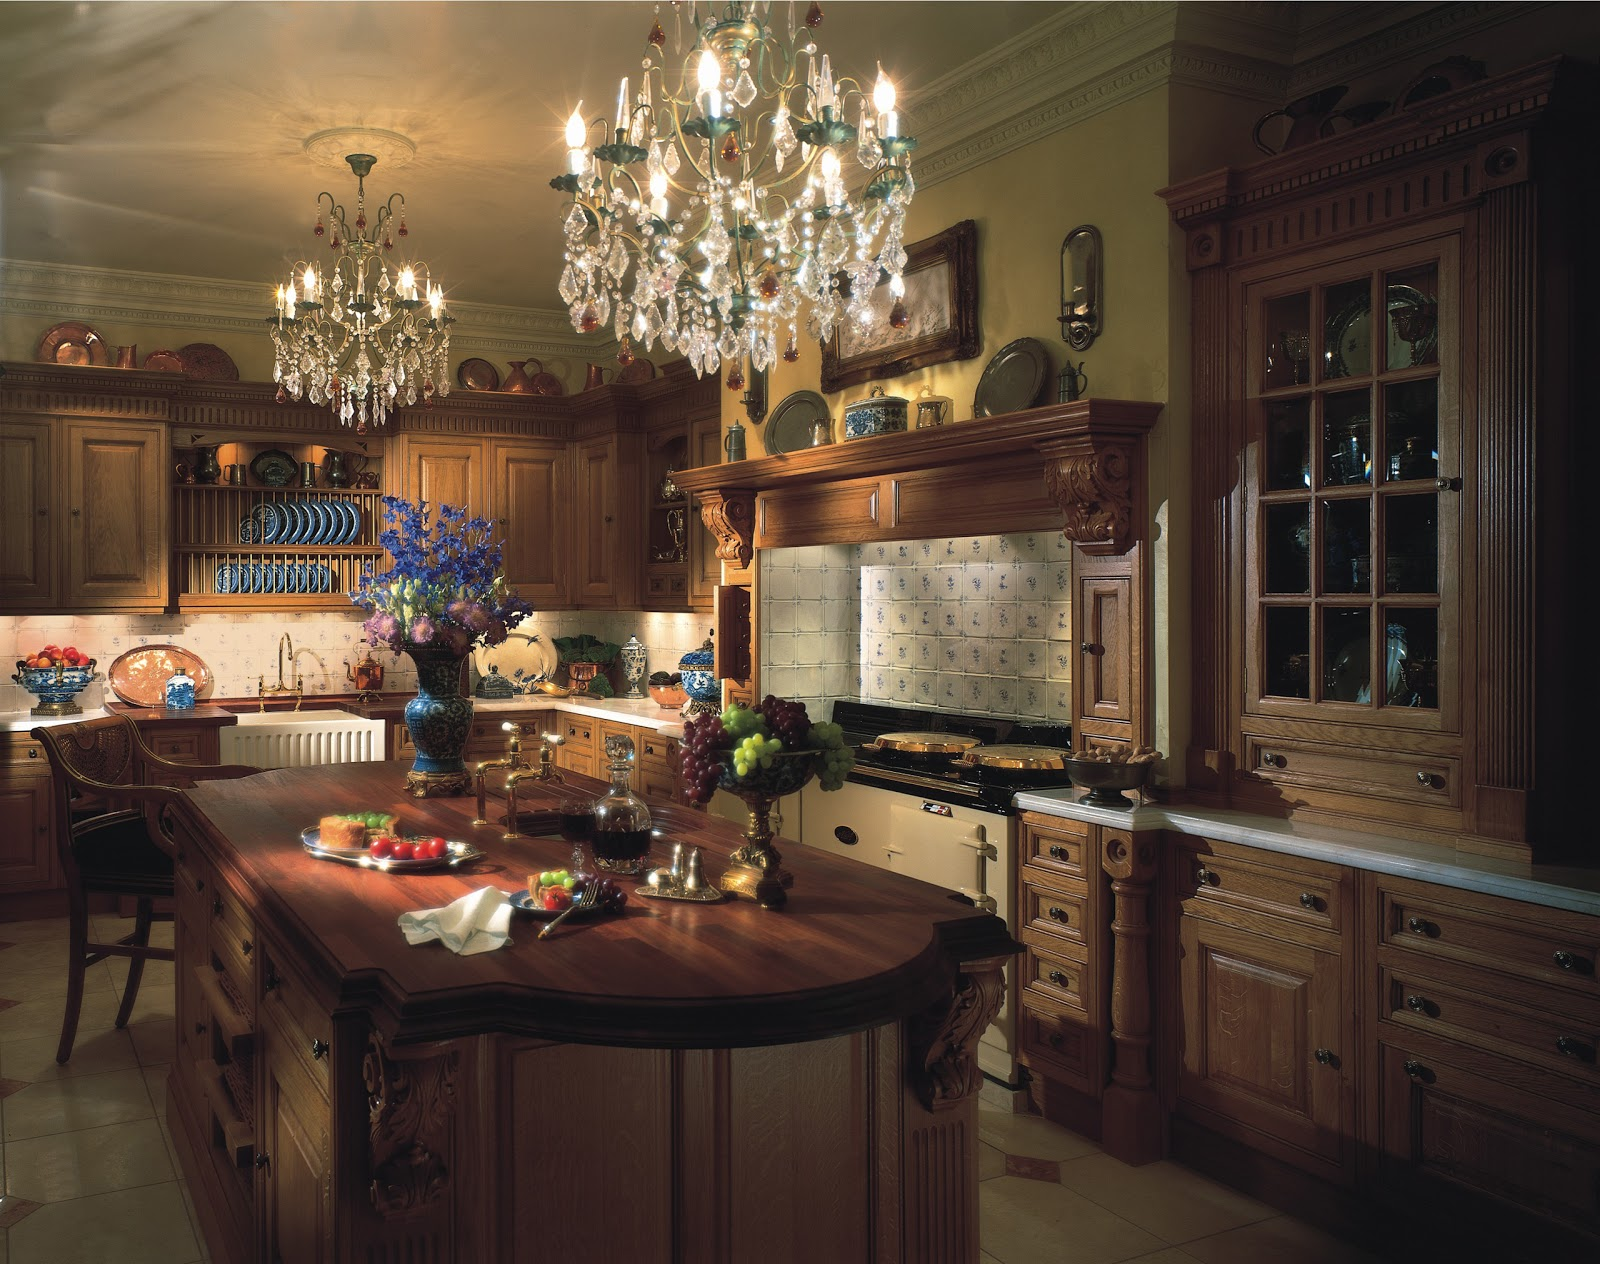 Tradition interiors of nottingham clive christian luxury for Victorian kitchen designs